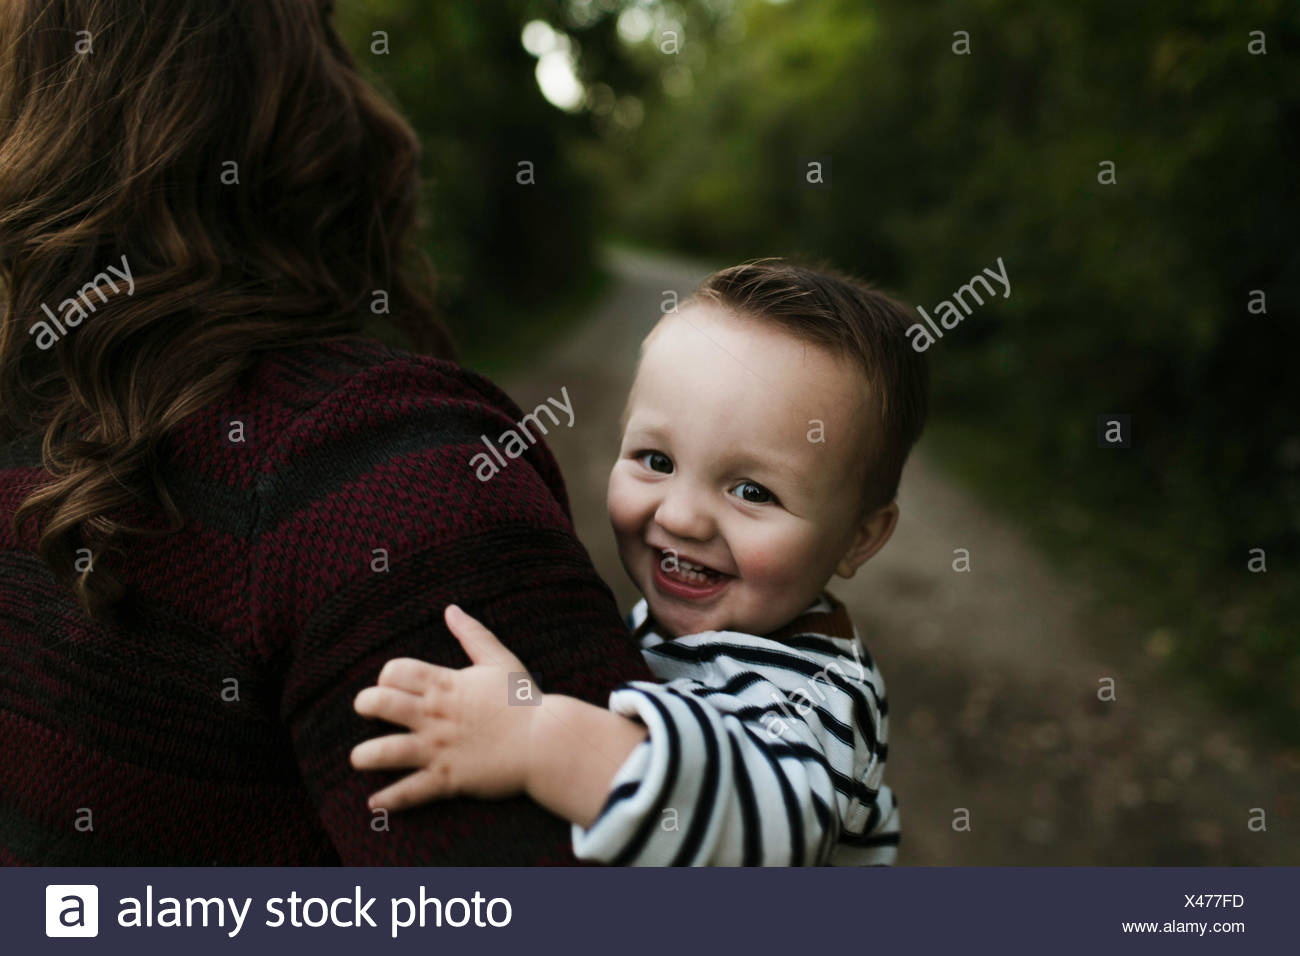 Baby boy in mother's arms looking at camera smiling - Stock Image